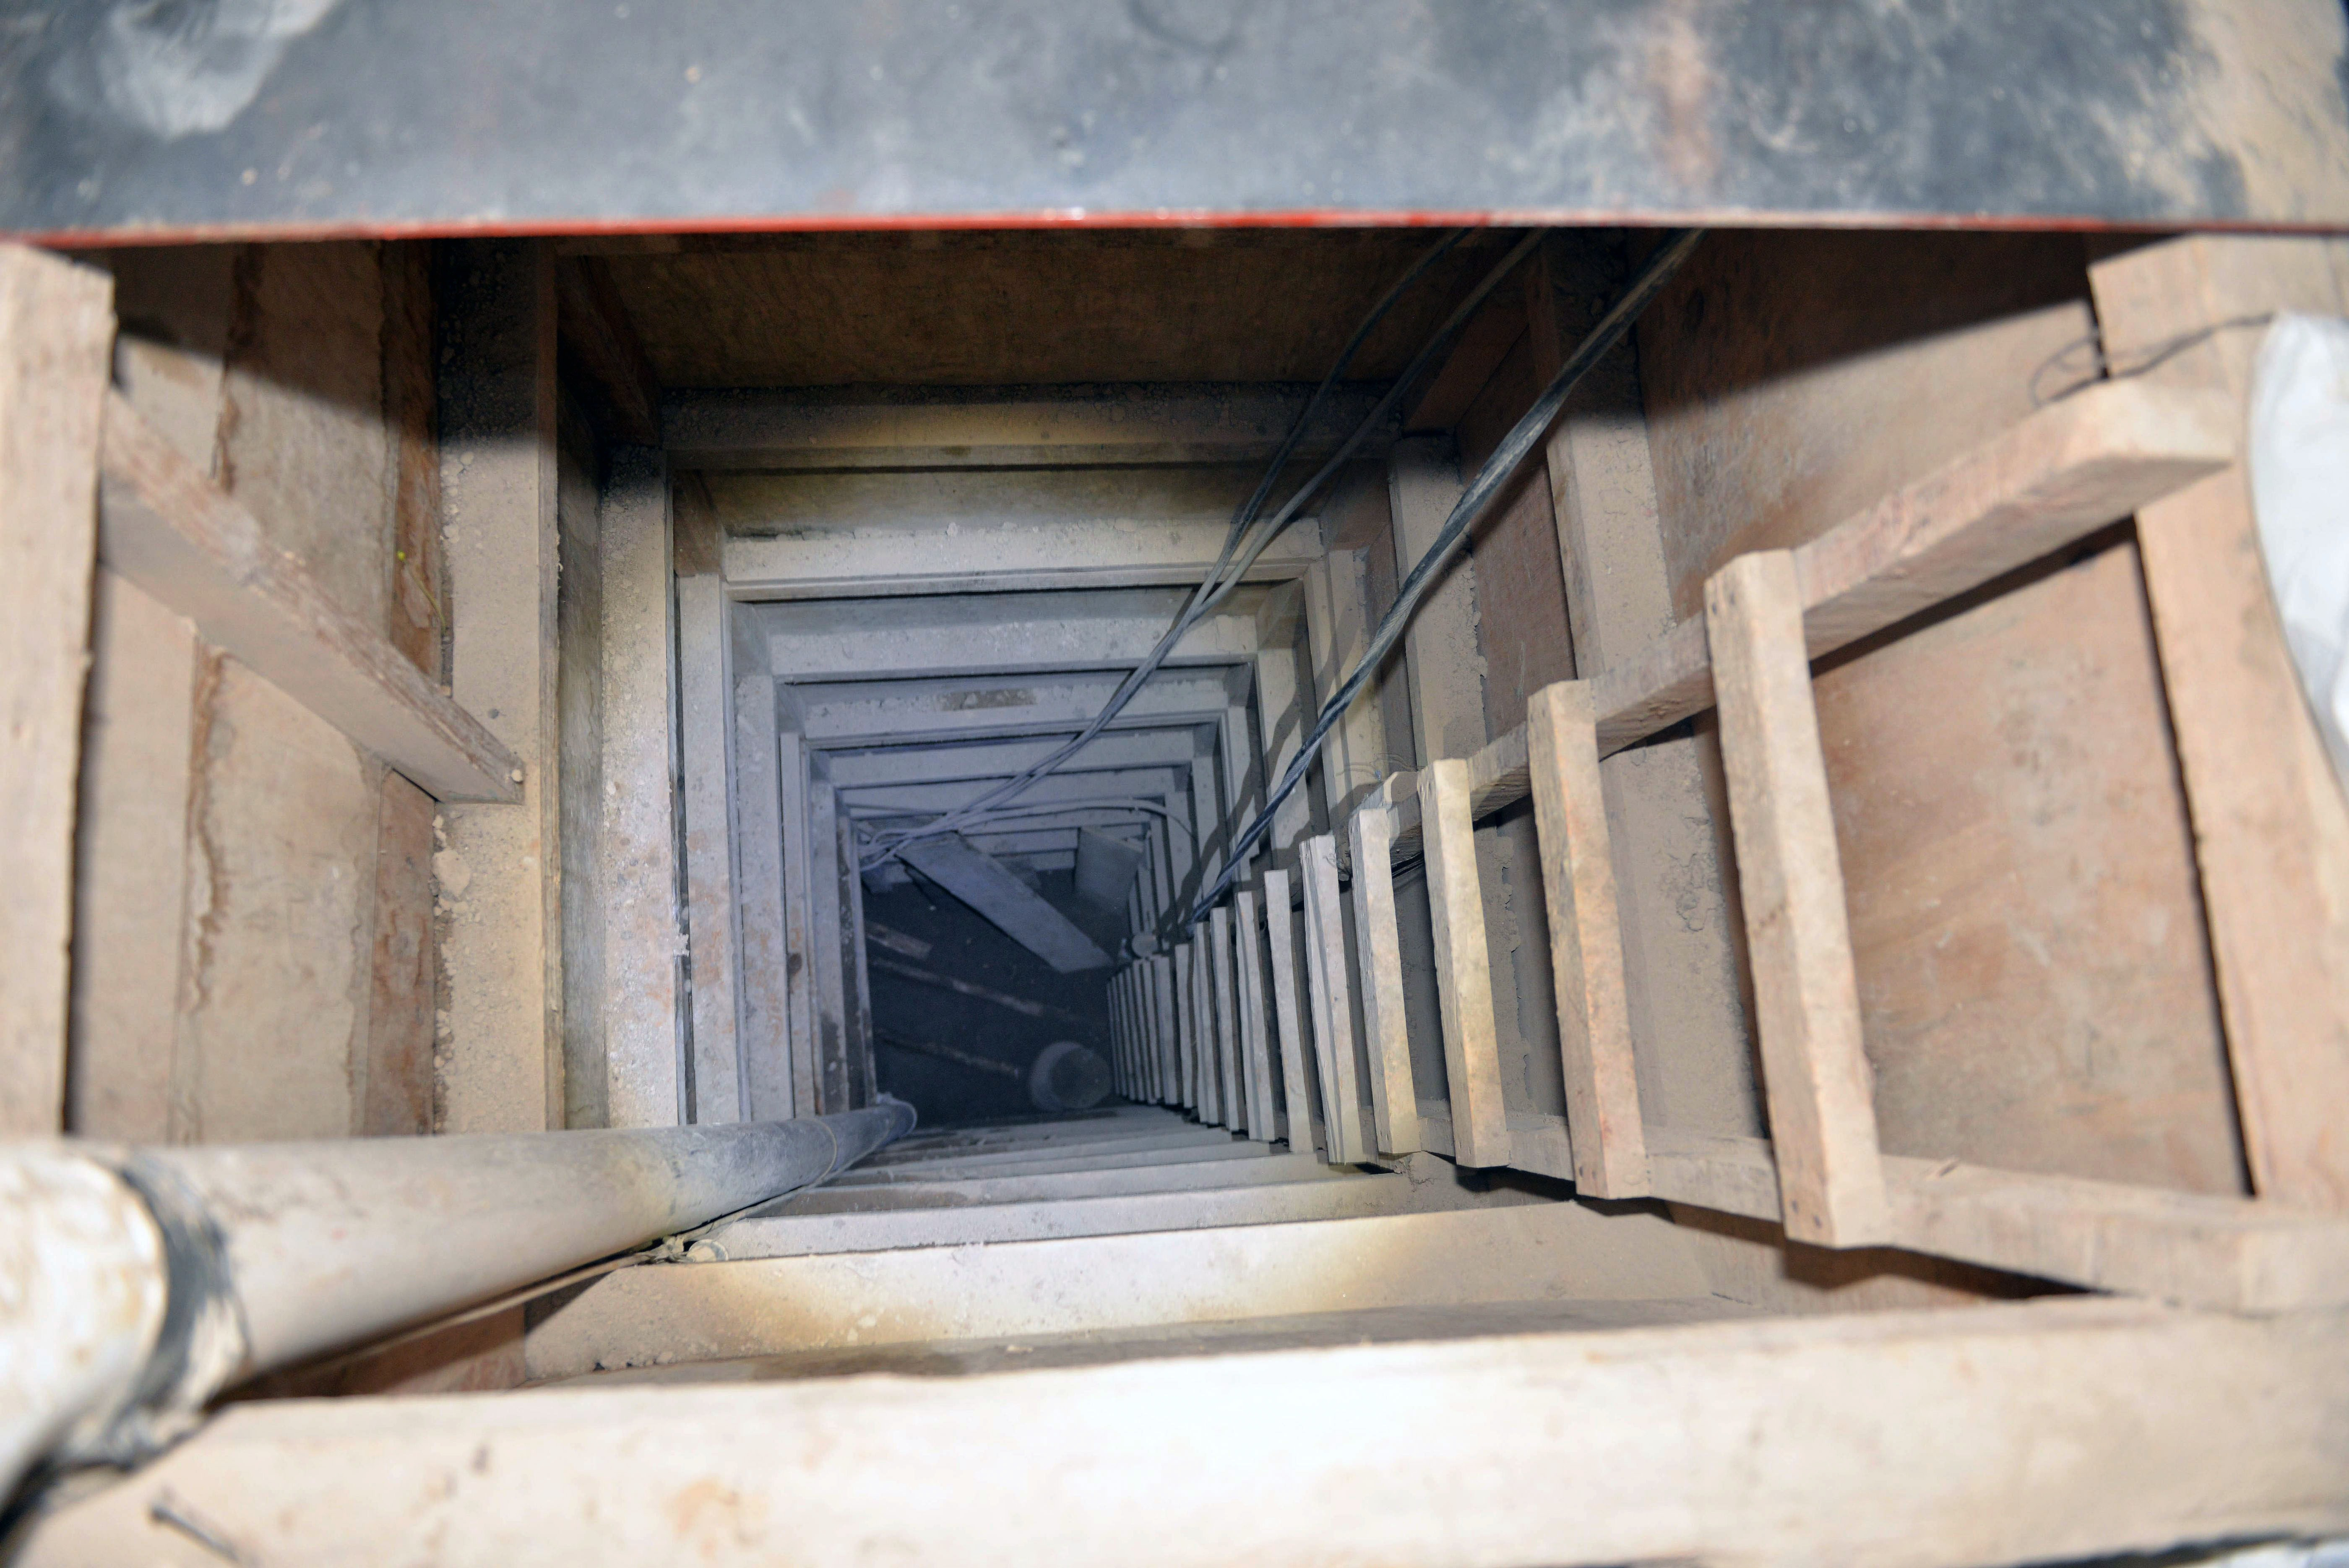 "Picture of the presumed end of the tunnel through which Mexican drug lord Joaquin ""El Chapo"" Guzman might have escaped from the Altiplano prison, in a house in Almoloya de Juarez, Mexico, on July 14, 2015. MARIO VAZQUEZ/AFP/Getty Images"